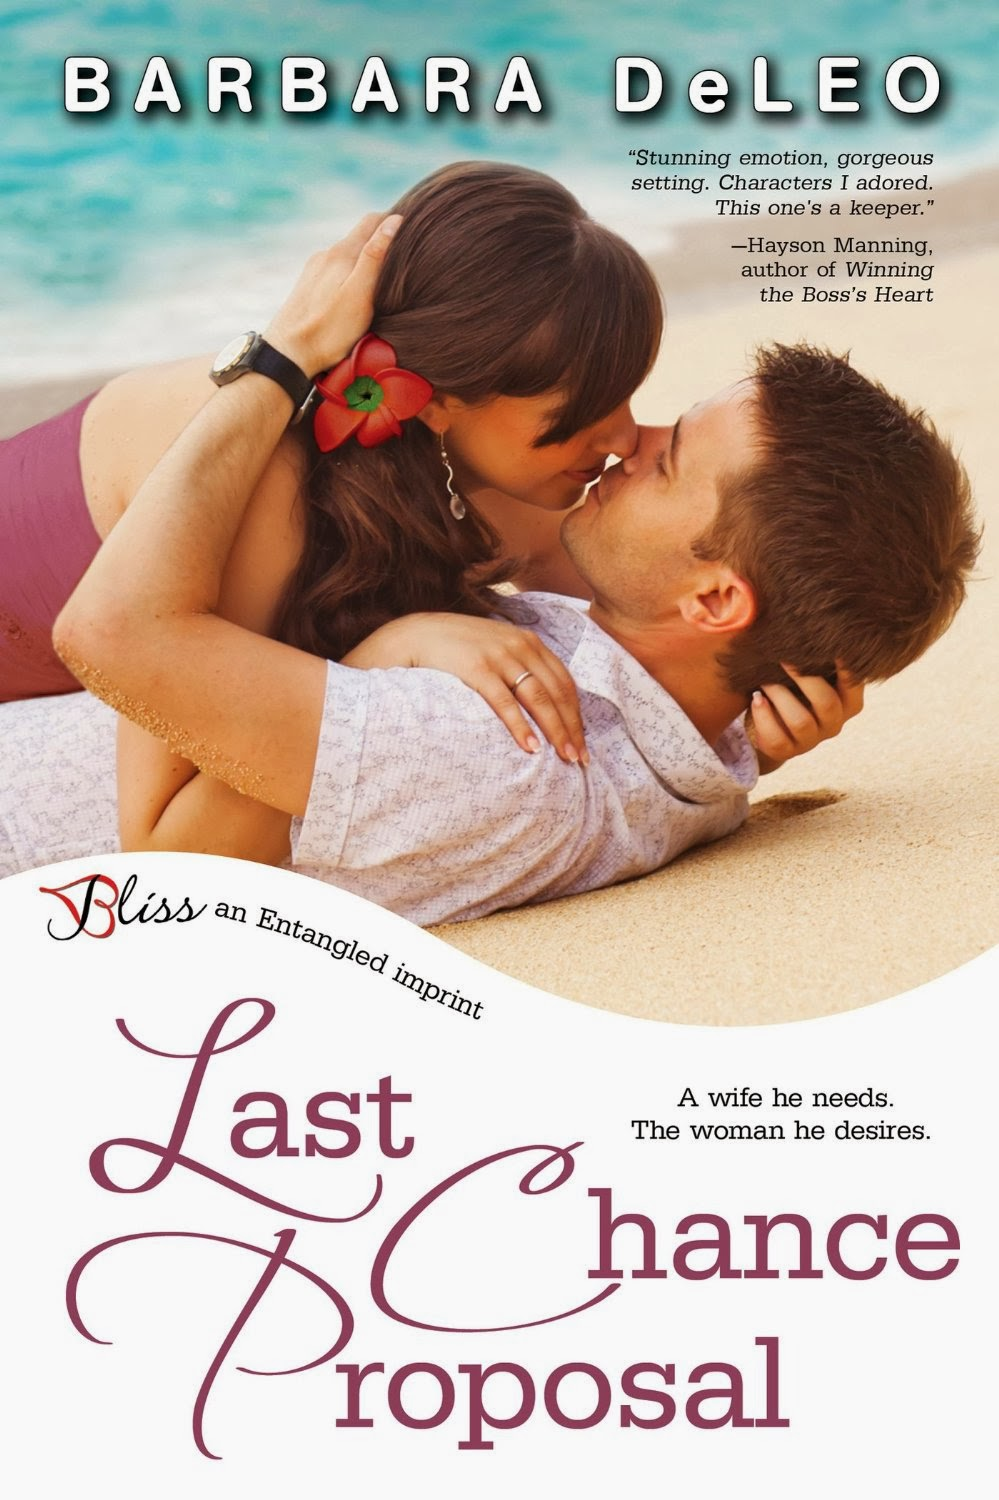 http://www.amazon.com/Last-Chance-Proposal-Entangled-Bliss-ebook/dp/B00GQ67VSG/ref=la_B009BHOXCO_1_1?s=books&ie=UTF8&qid=1391086245&sr=1-1